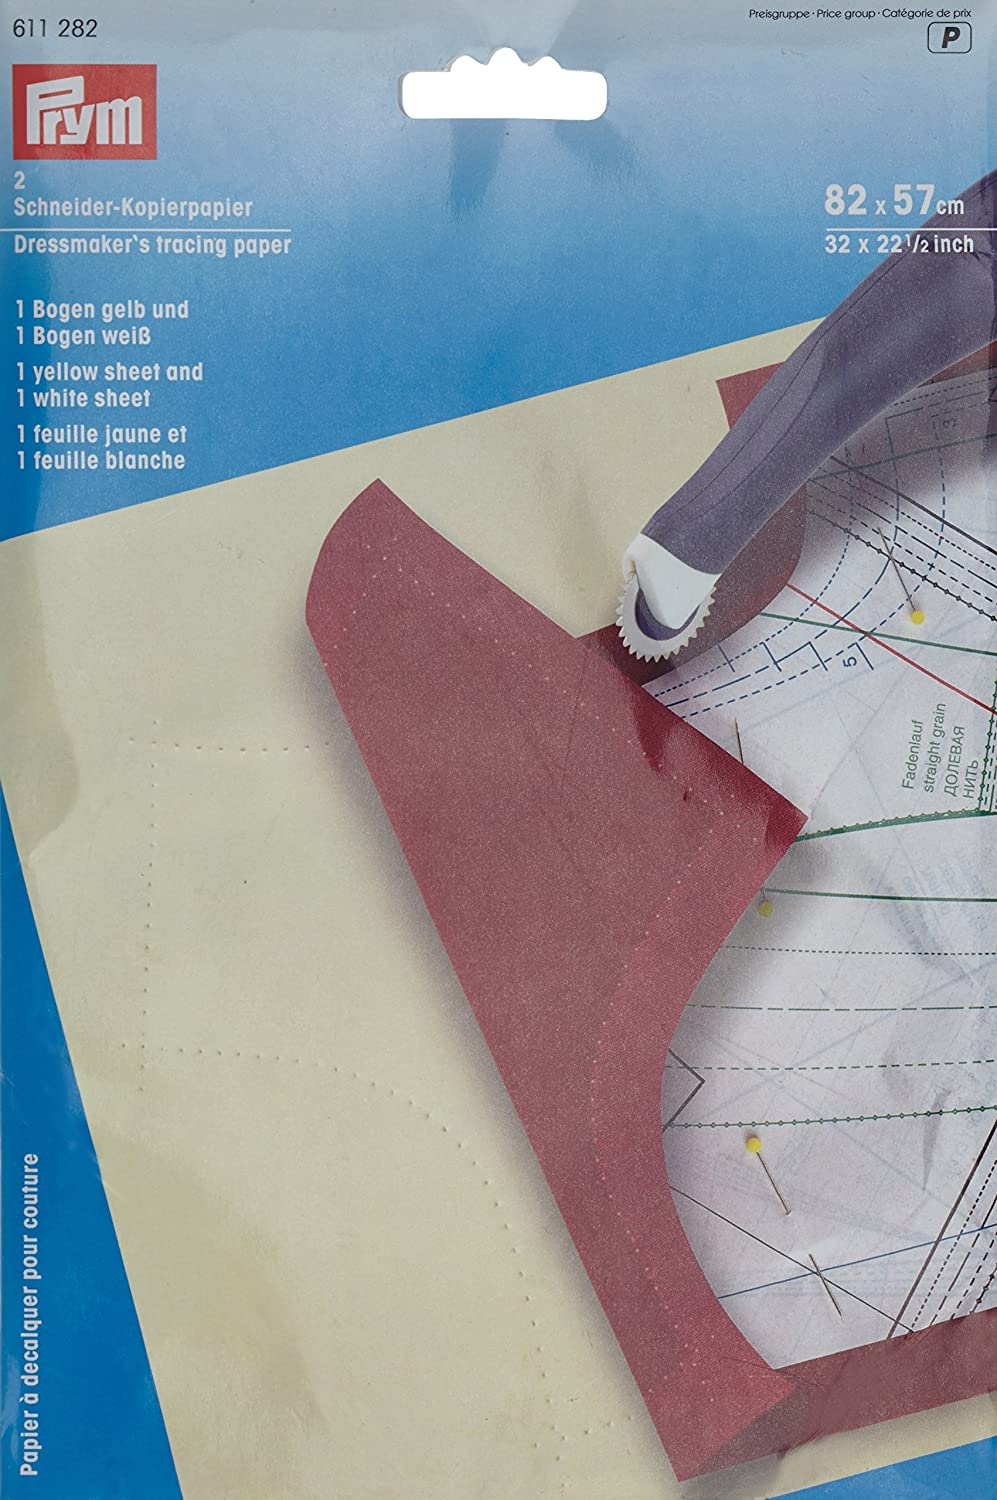 PRYM 611282 Tracing paper, 2 sheets by PRYM PRYM_611282